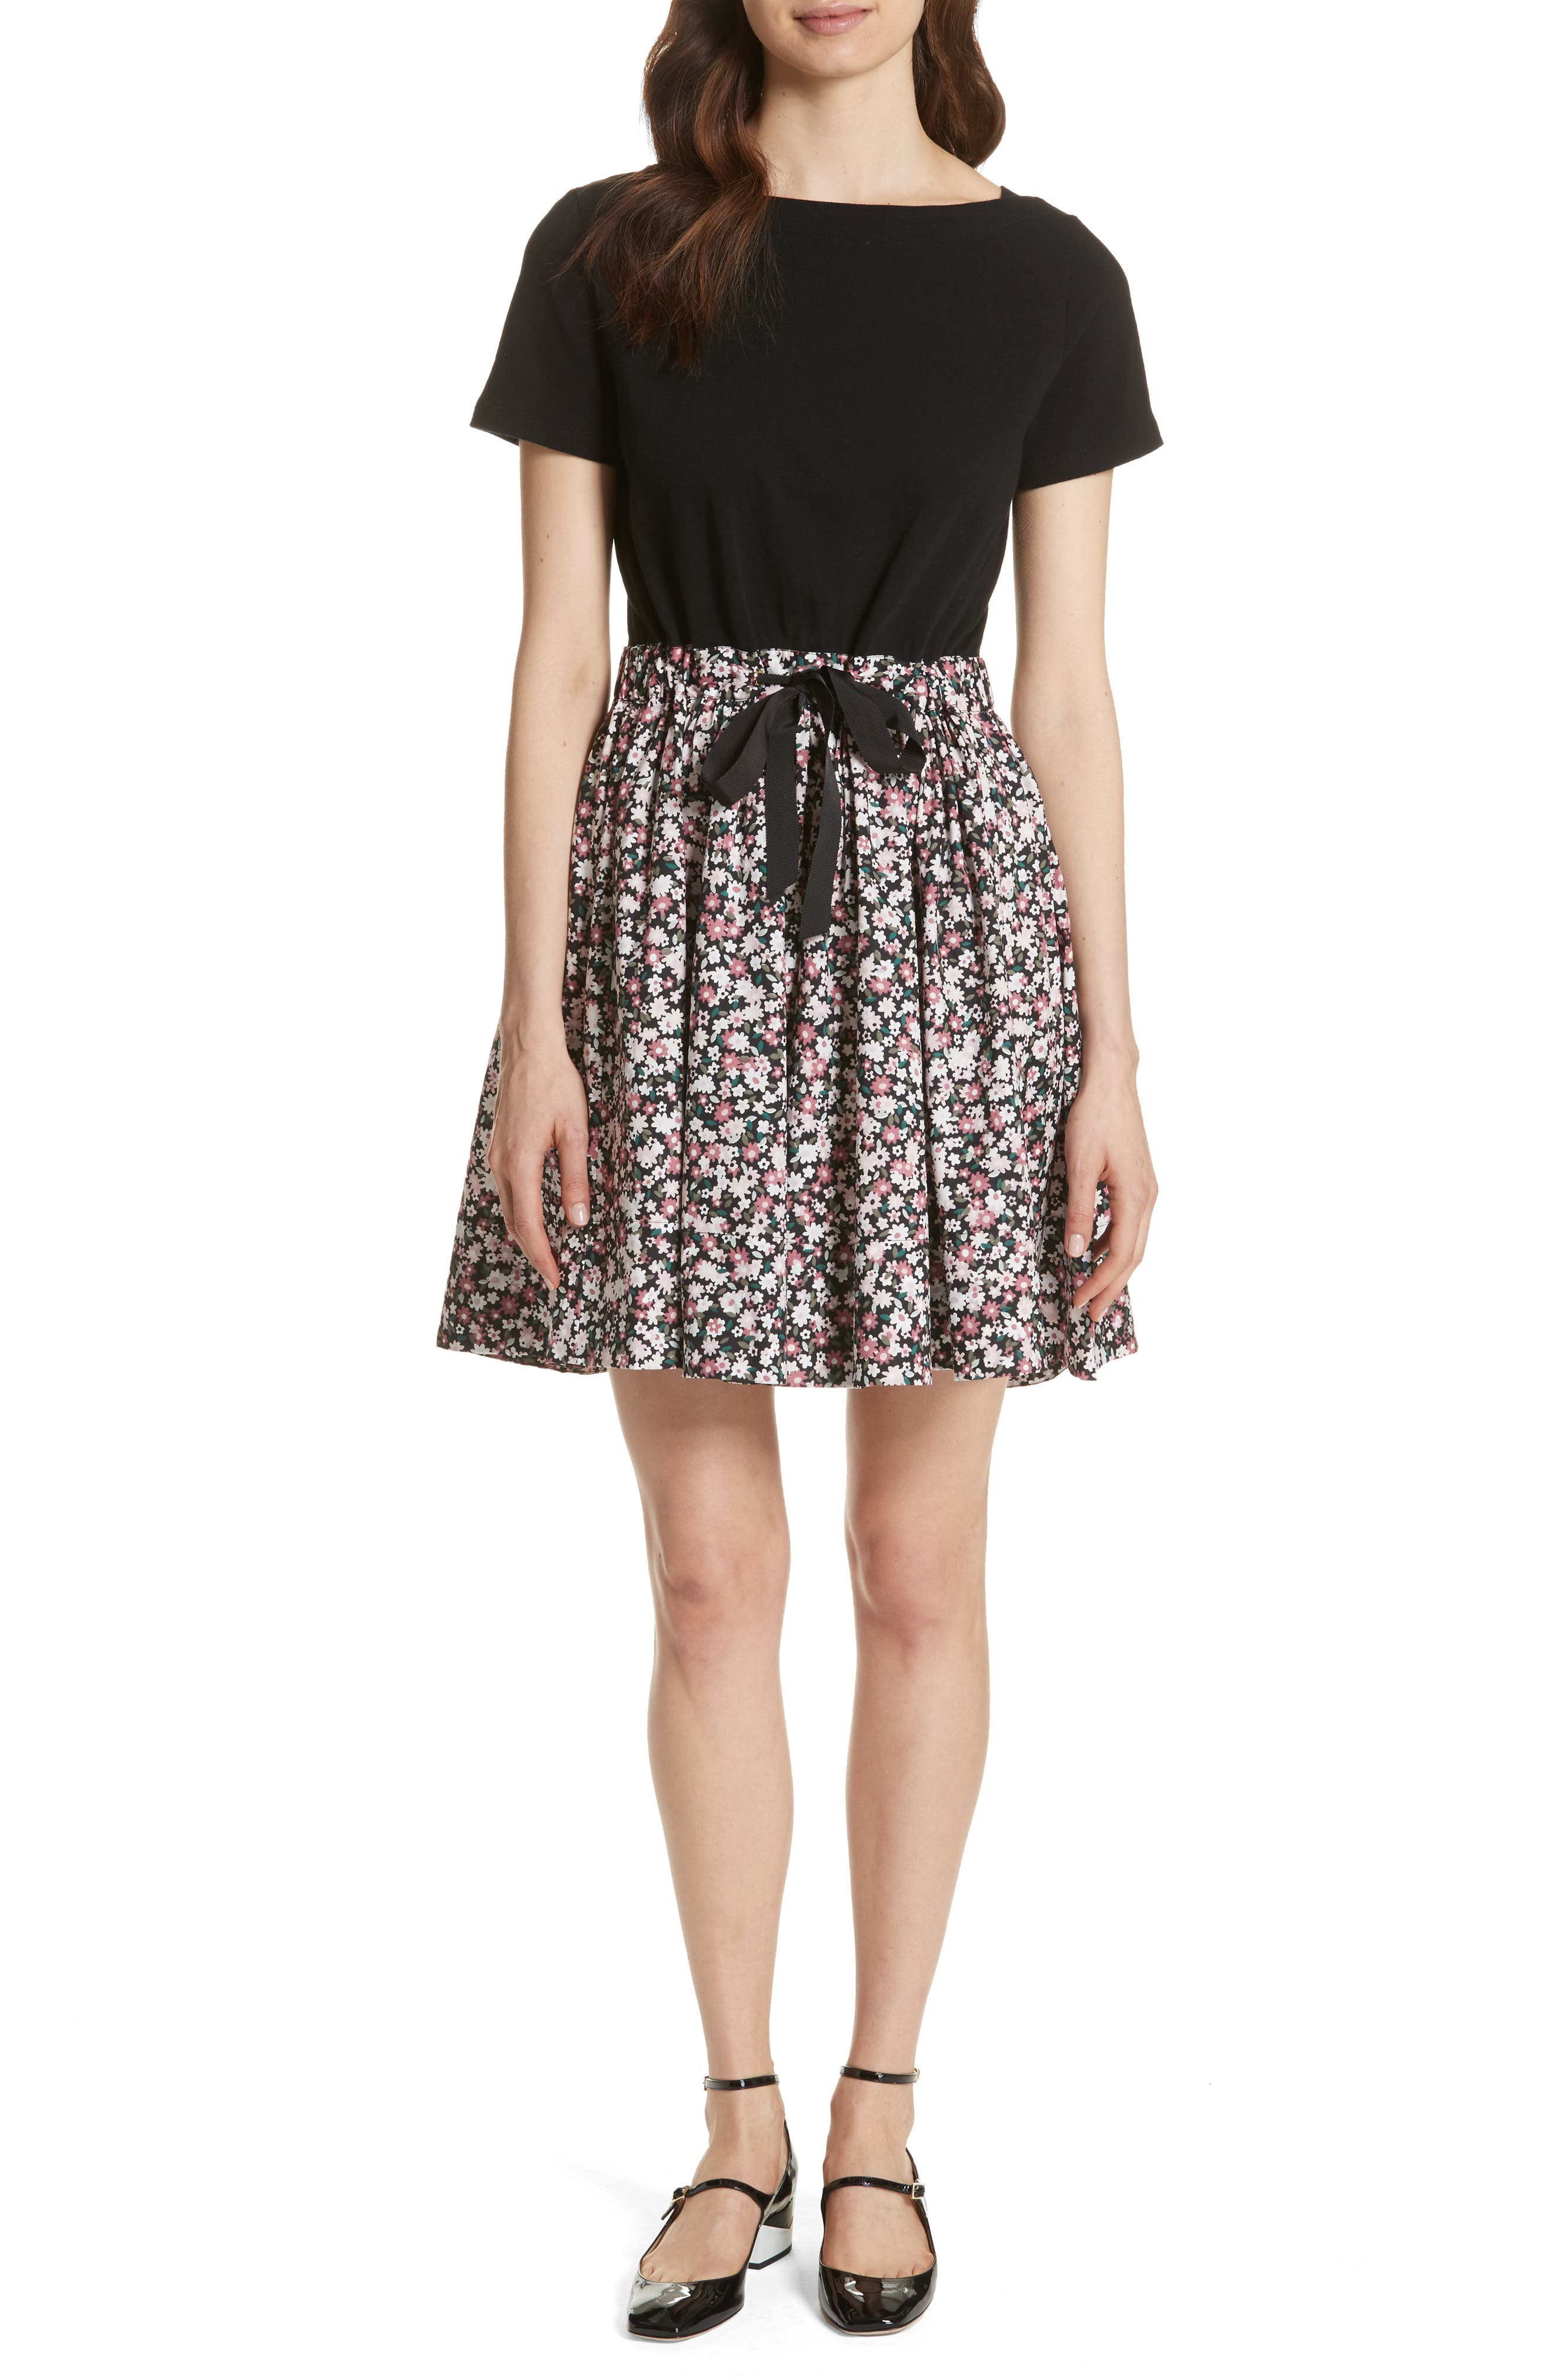 wildflower mixed media dress,                         Main,                         color, 001